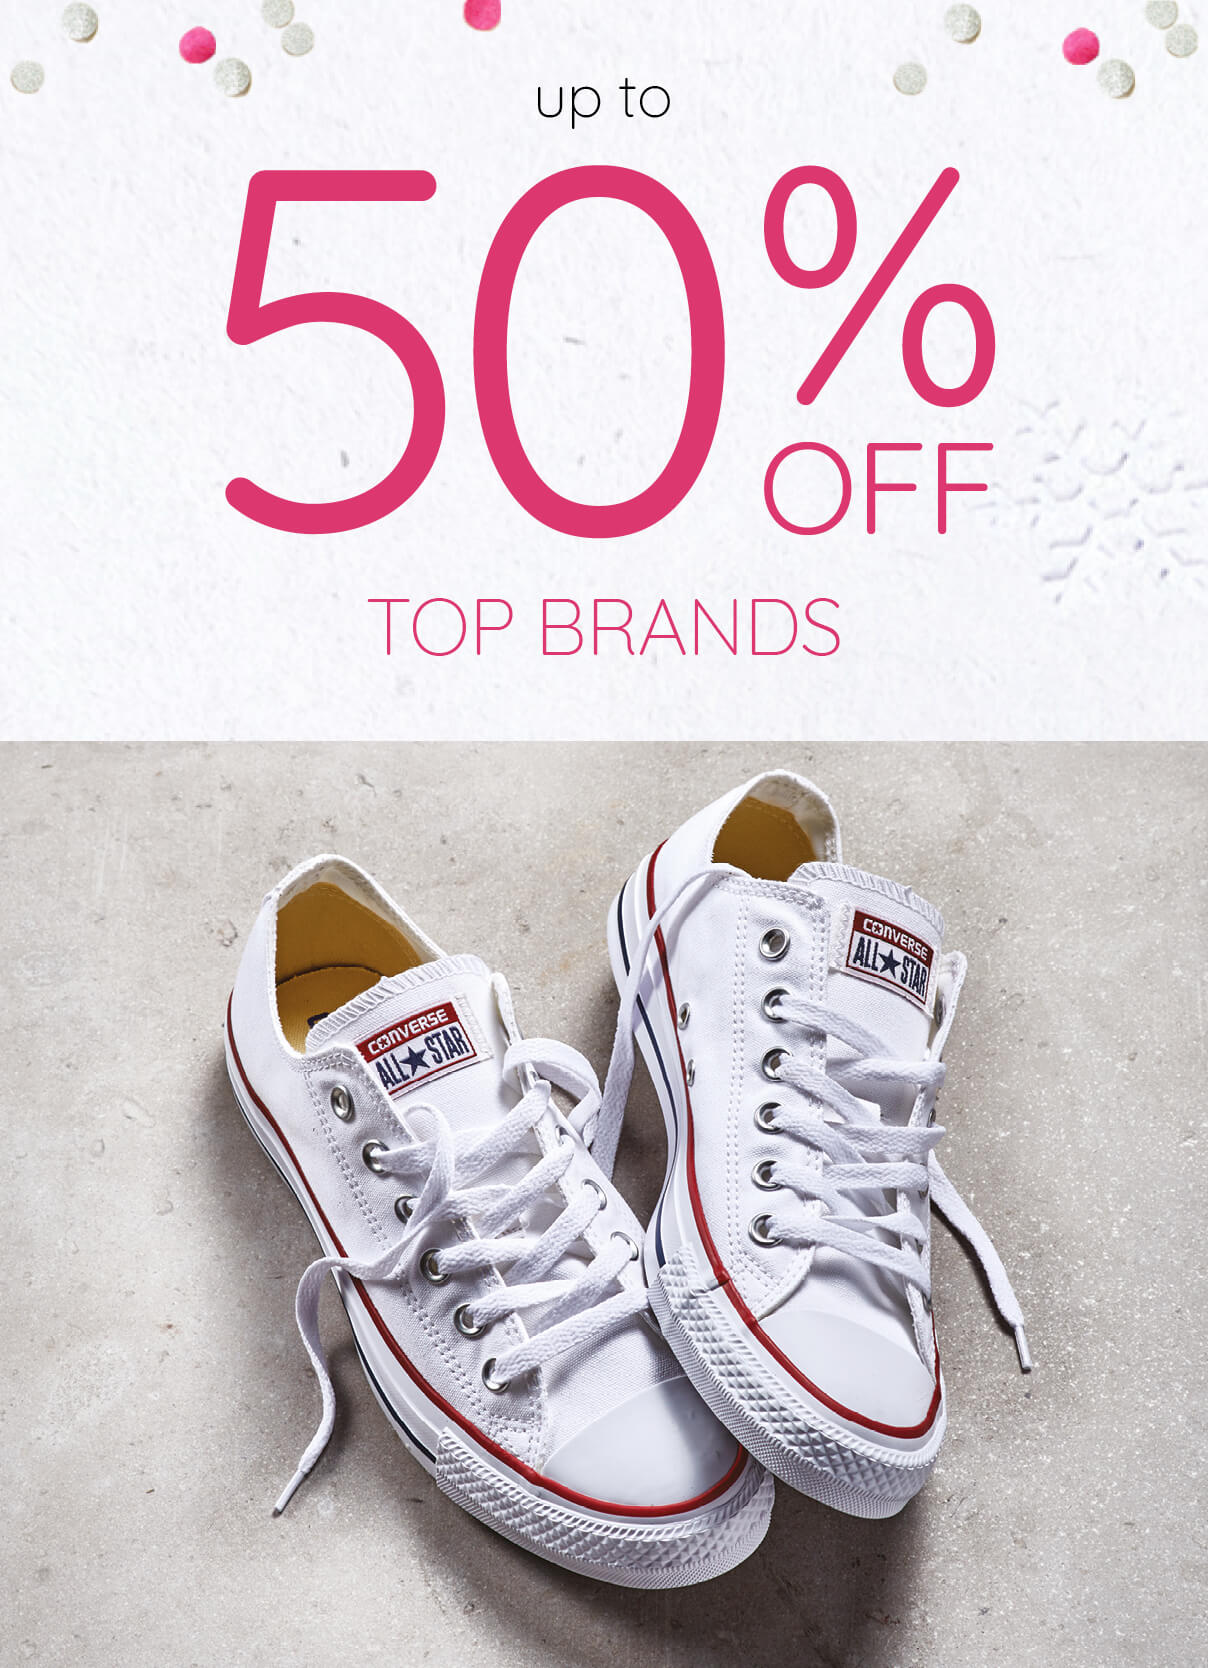 Winter Sale - Up to 50% Off Top Brands